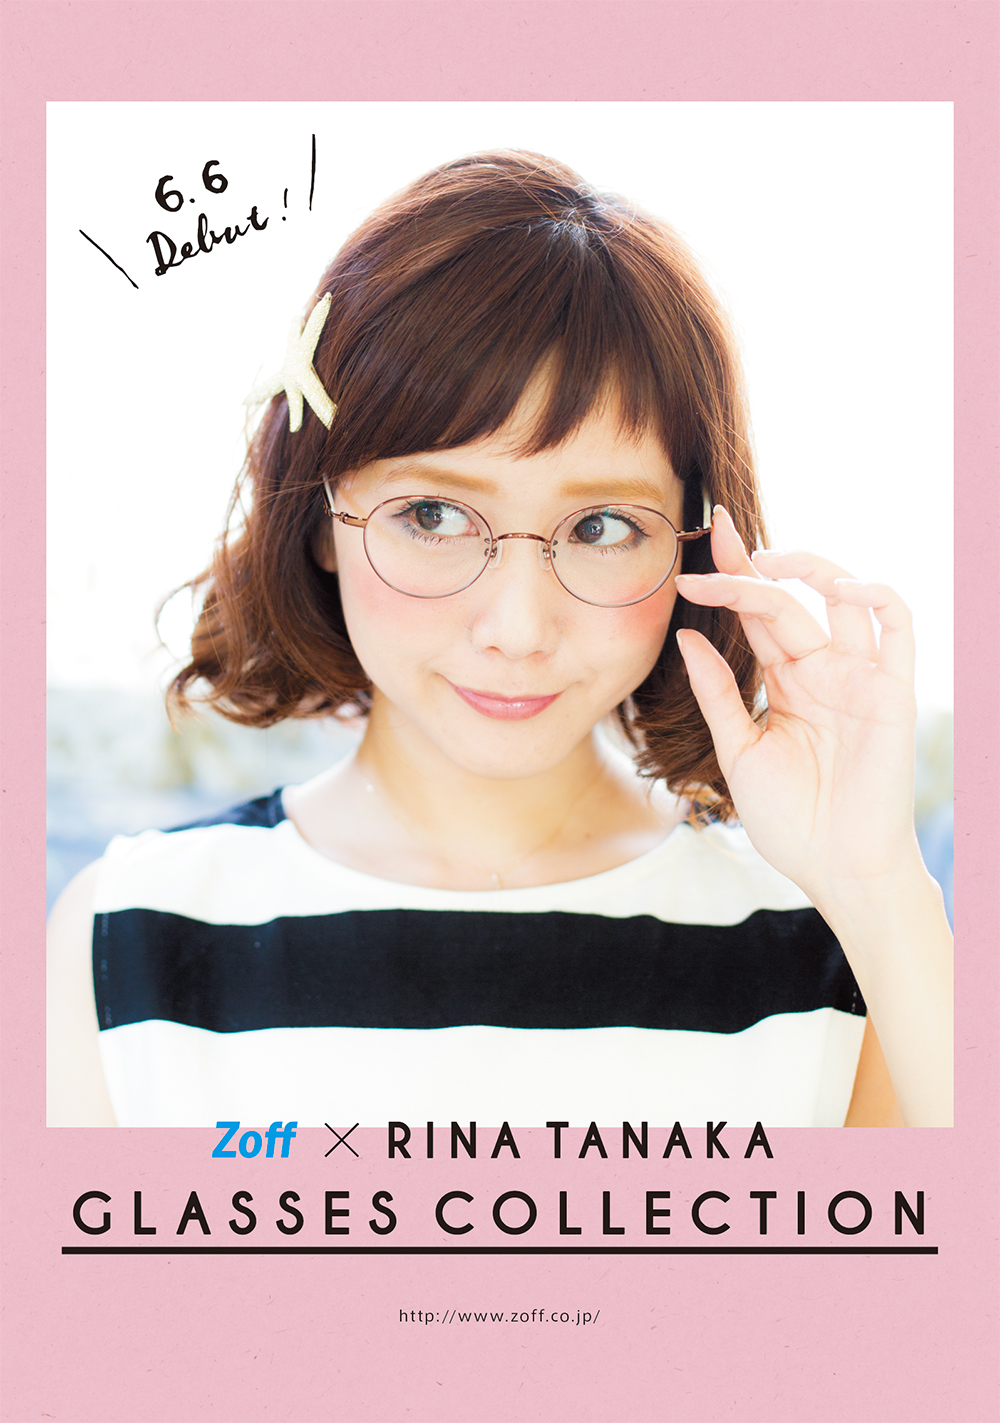 Zoff「Zoff × RINA TANAKA GLASSES COLLECTION」Visual & Booklet